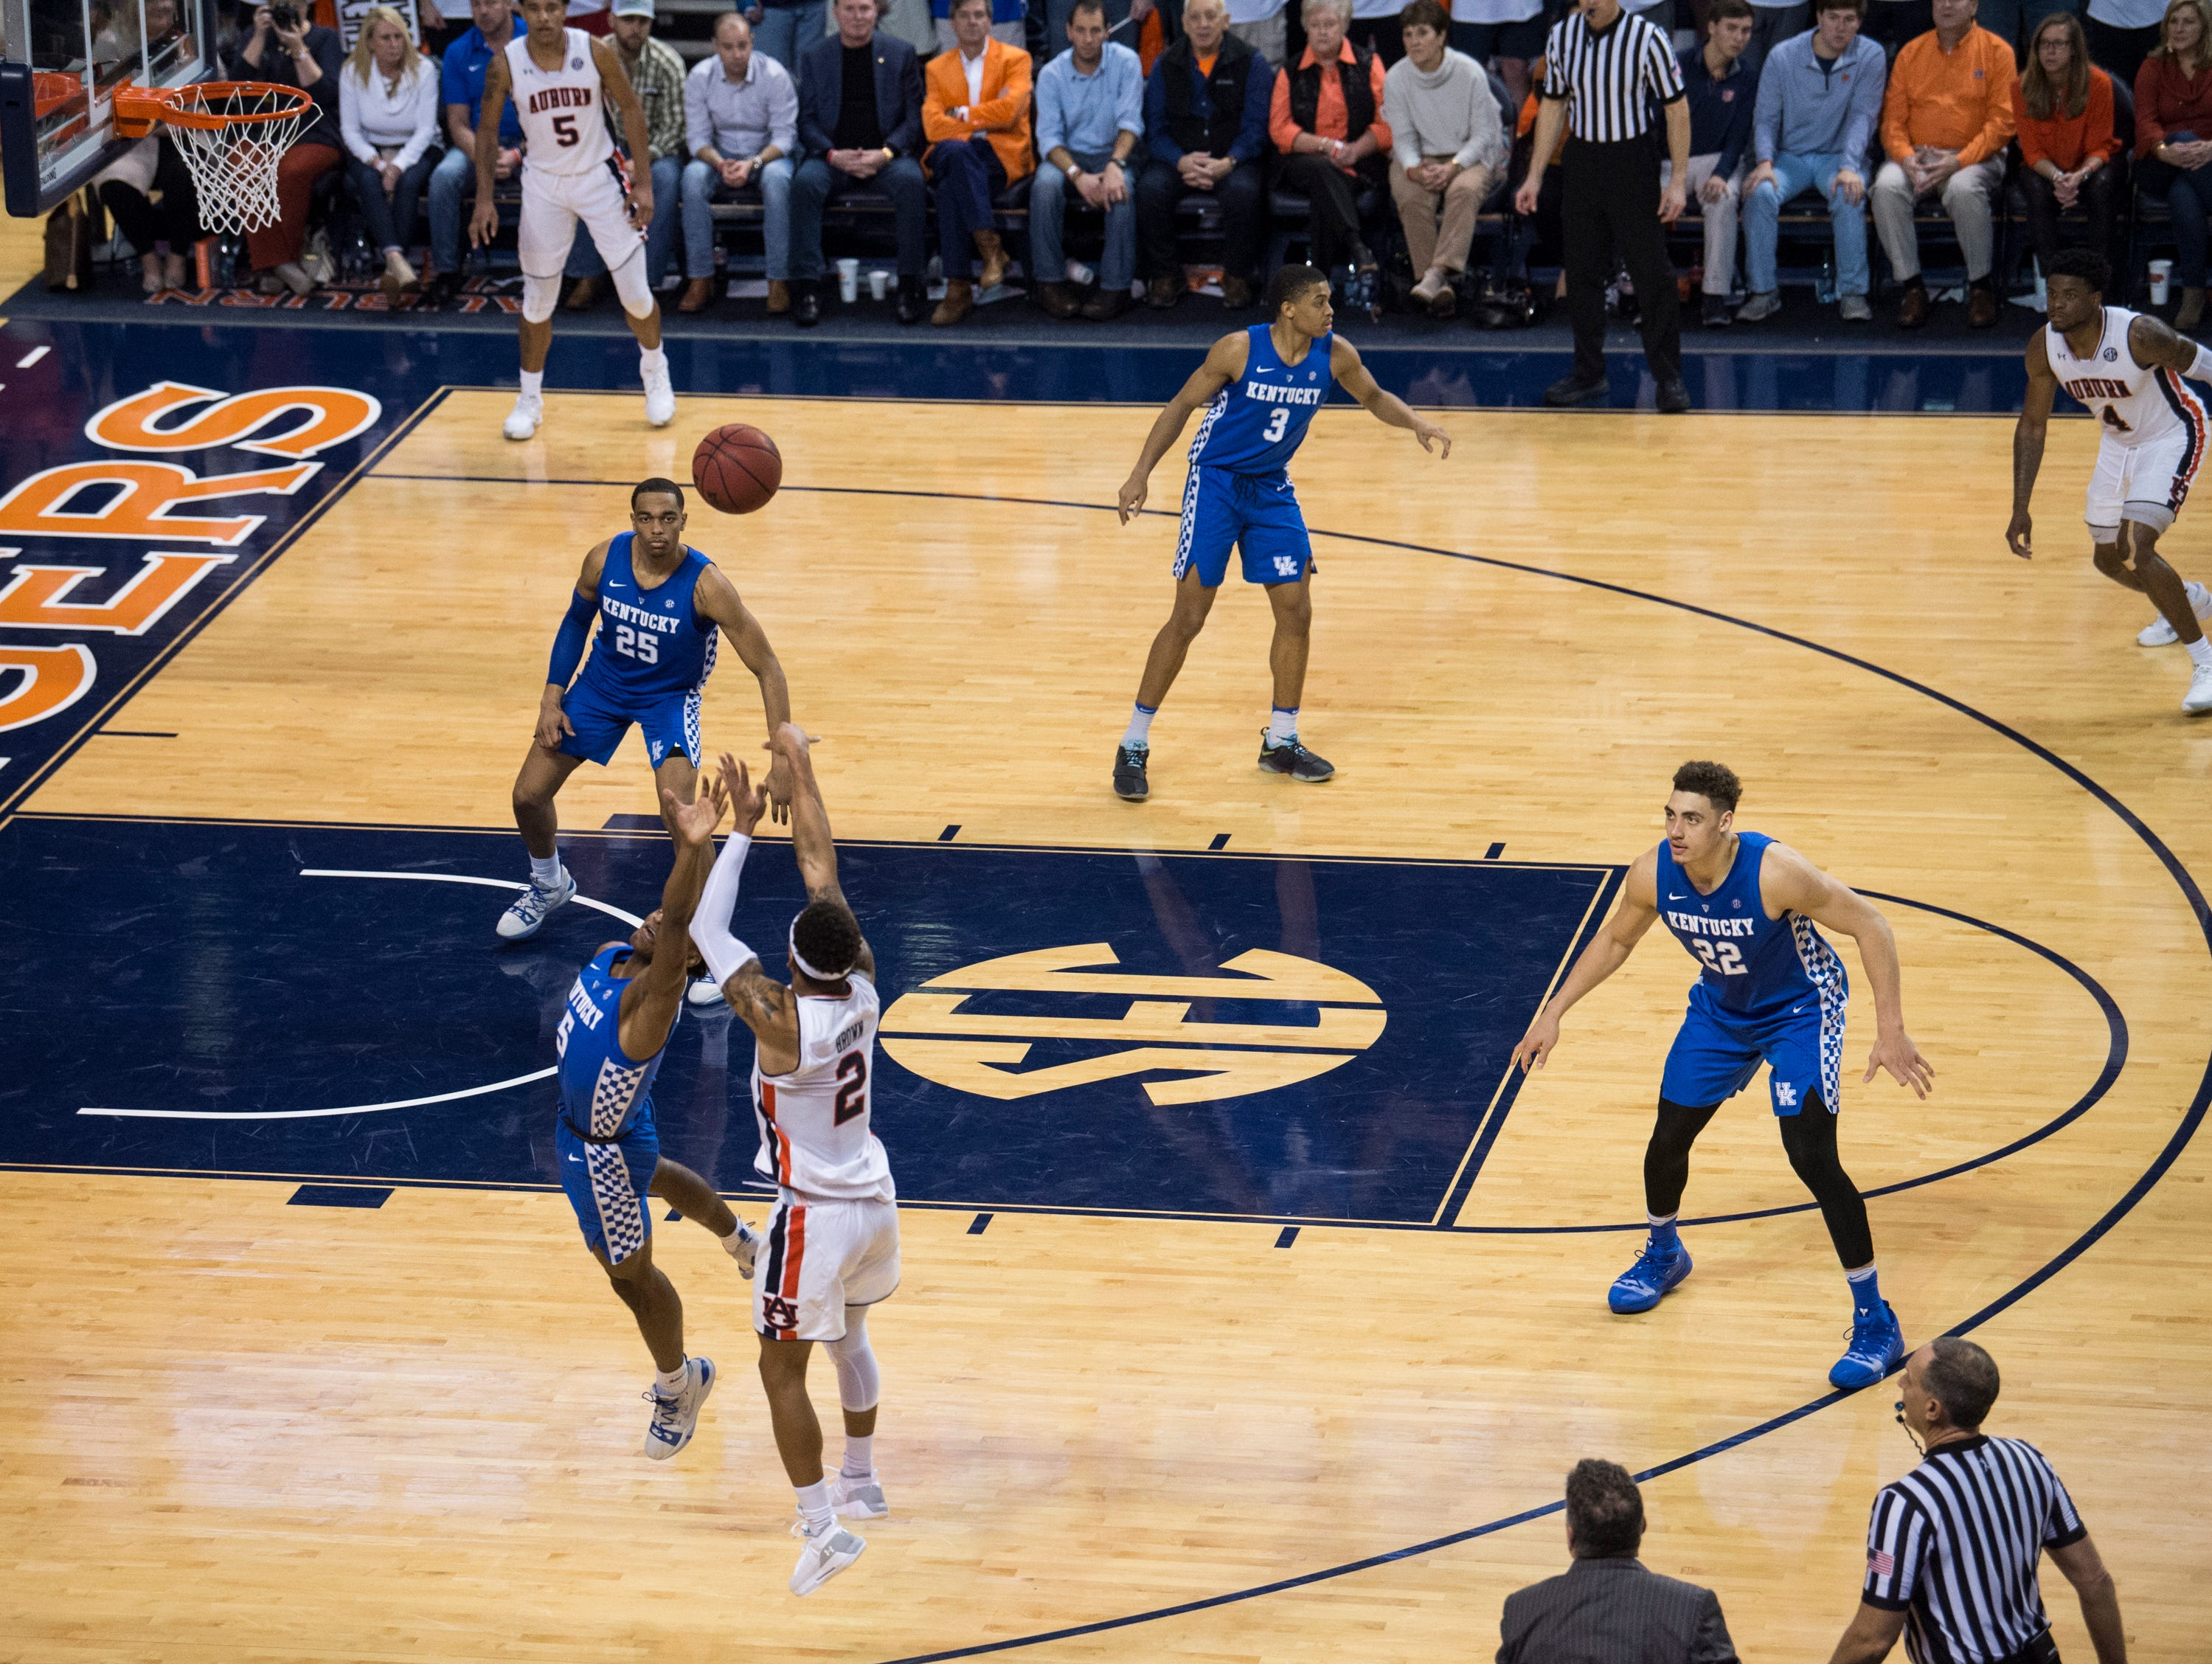 Auburn guard Bryce Brown (2) makes a late game three pointer at Auburn Arena in Auburn, Ala., on Saturday, Jan. 19, 2019. Kentucky defeats Auburn 82-80.